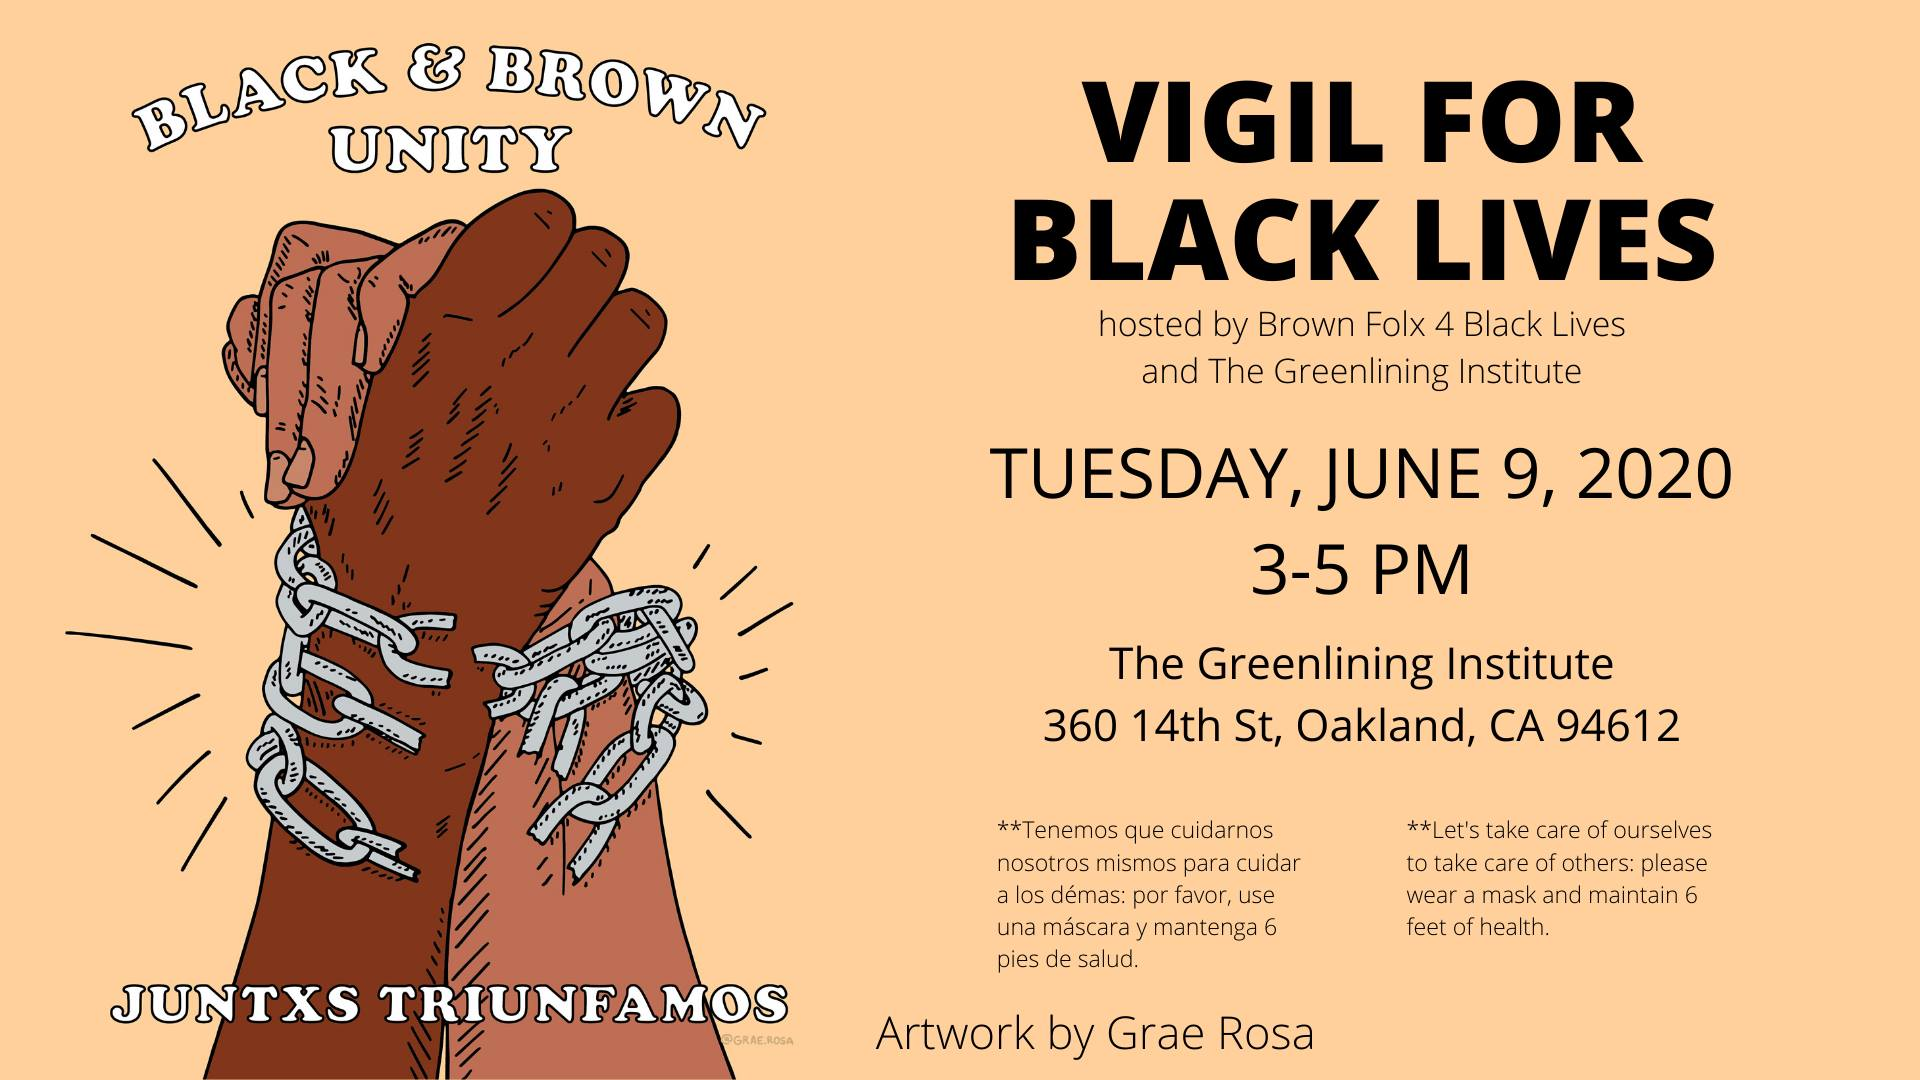 Flyer for Vigil for Black Lives